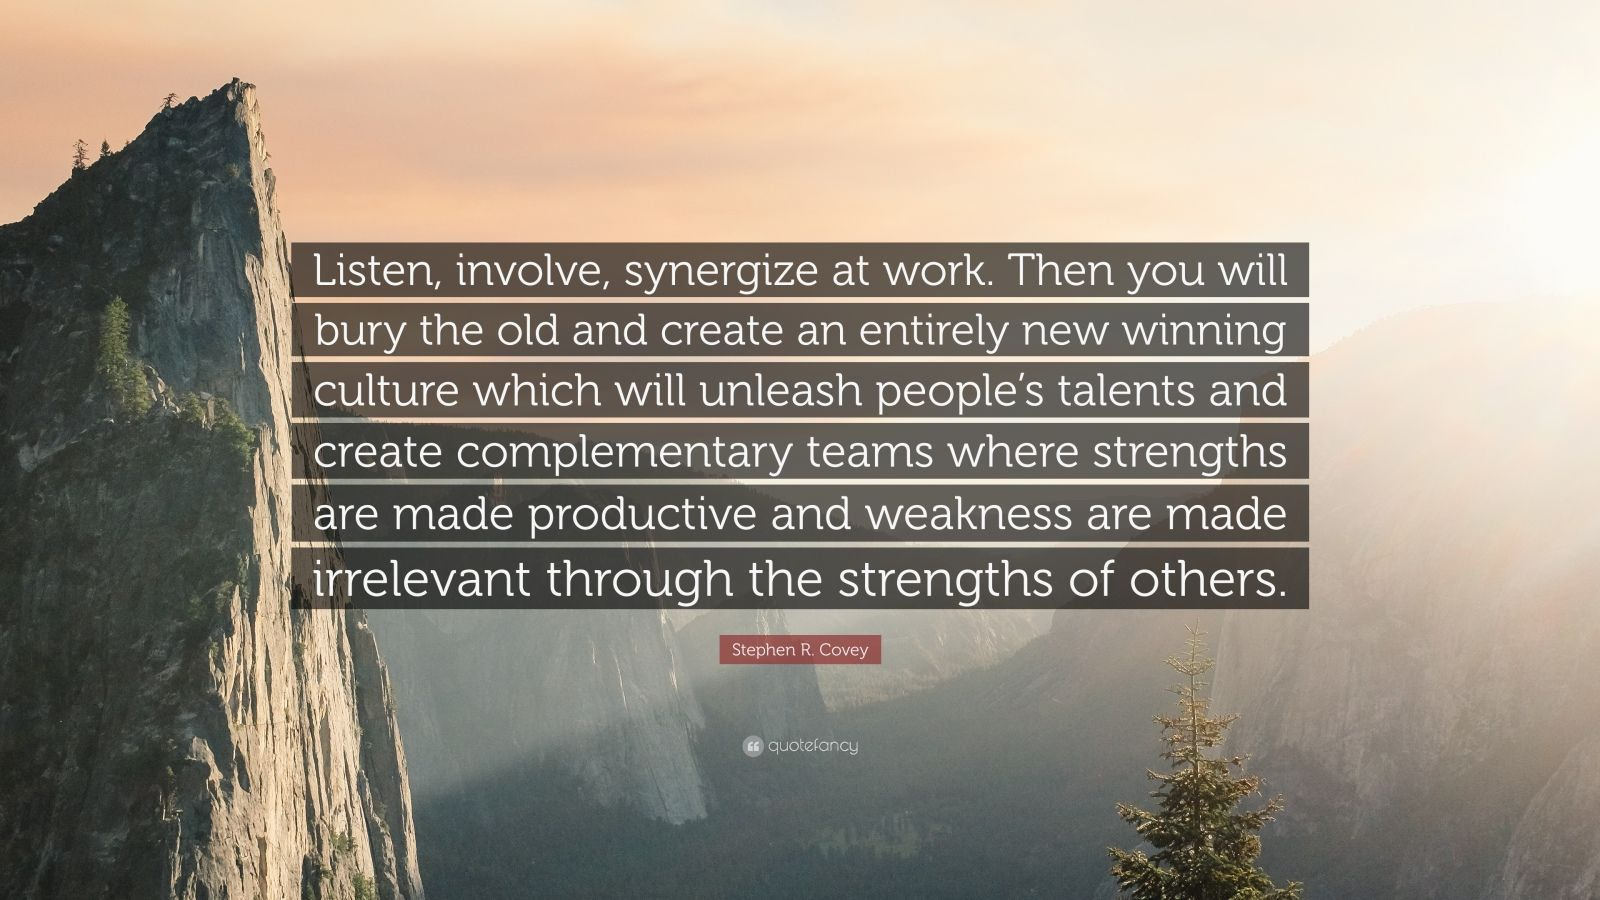 "Stephen R. Covey Quote: ""Listen, involve, synergize at work. Then you will bury the old and create an entirely new winning culture which will unleash people's talents and create complementary teams where strengths are made productive and weakness are made irrelevant through the strengths of others."""